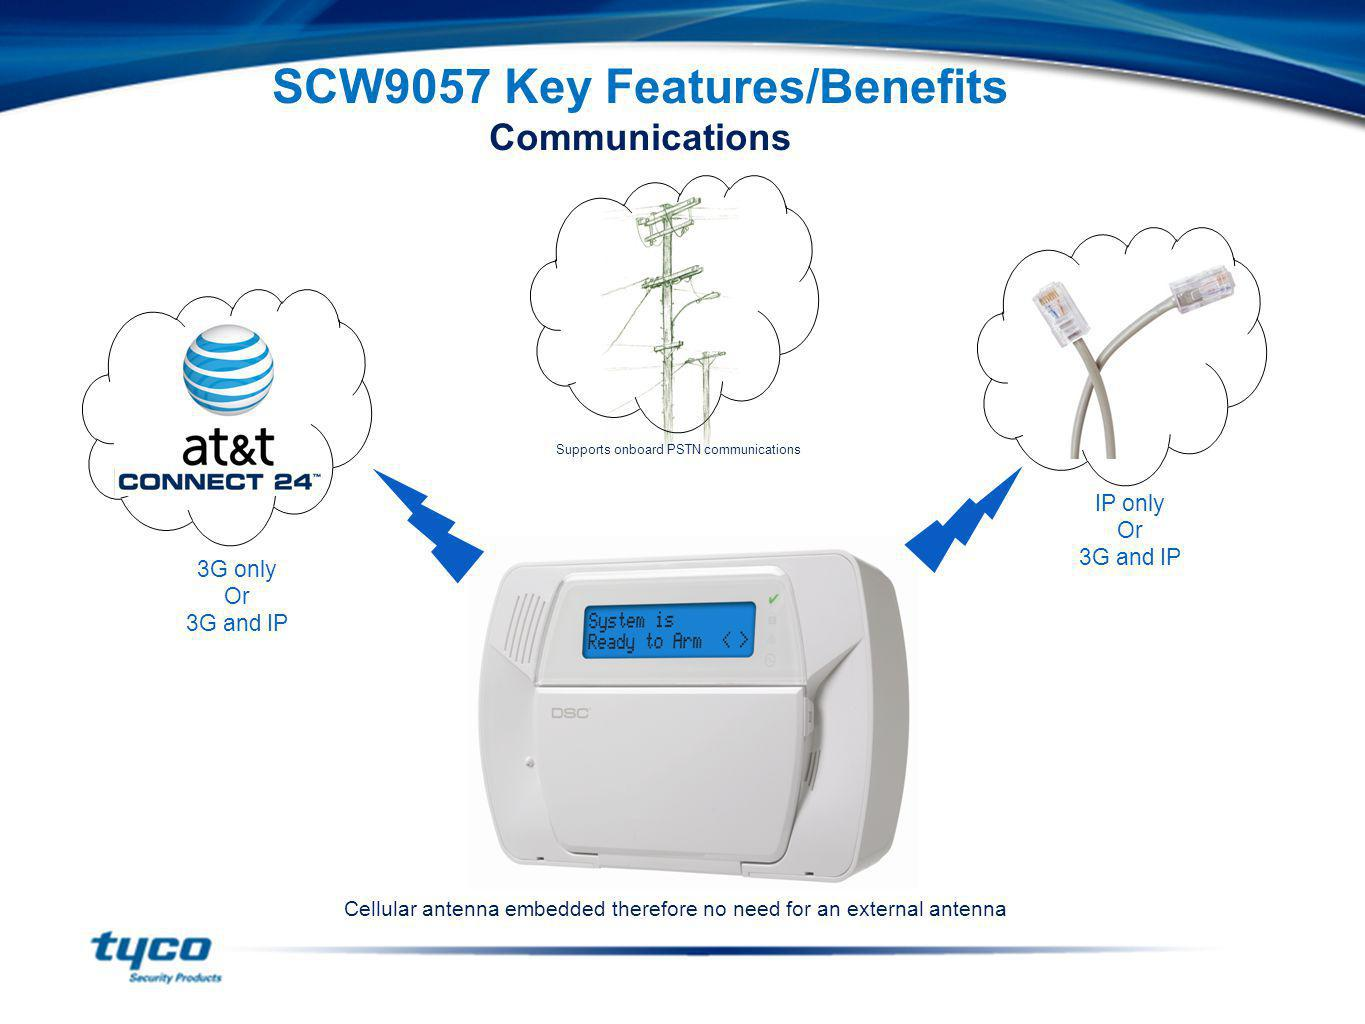 SCW9057 Key Features/Benefits Communications